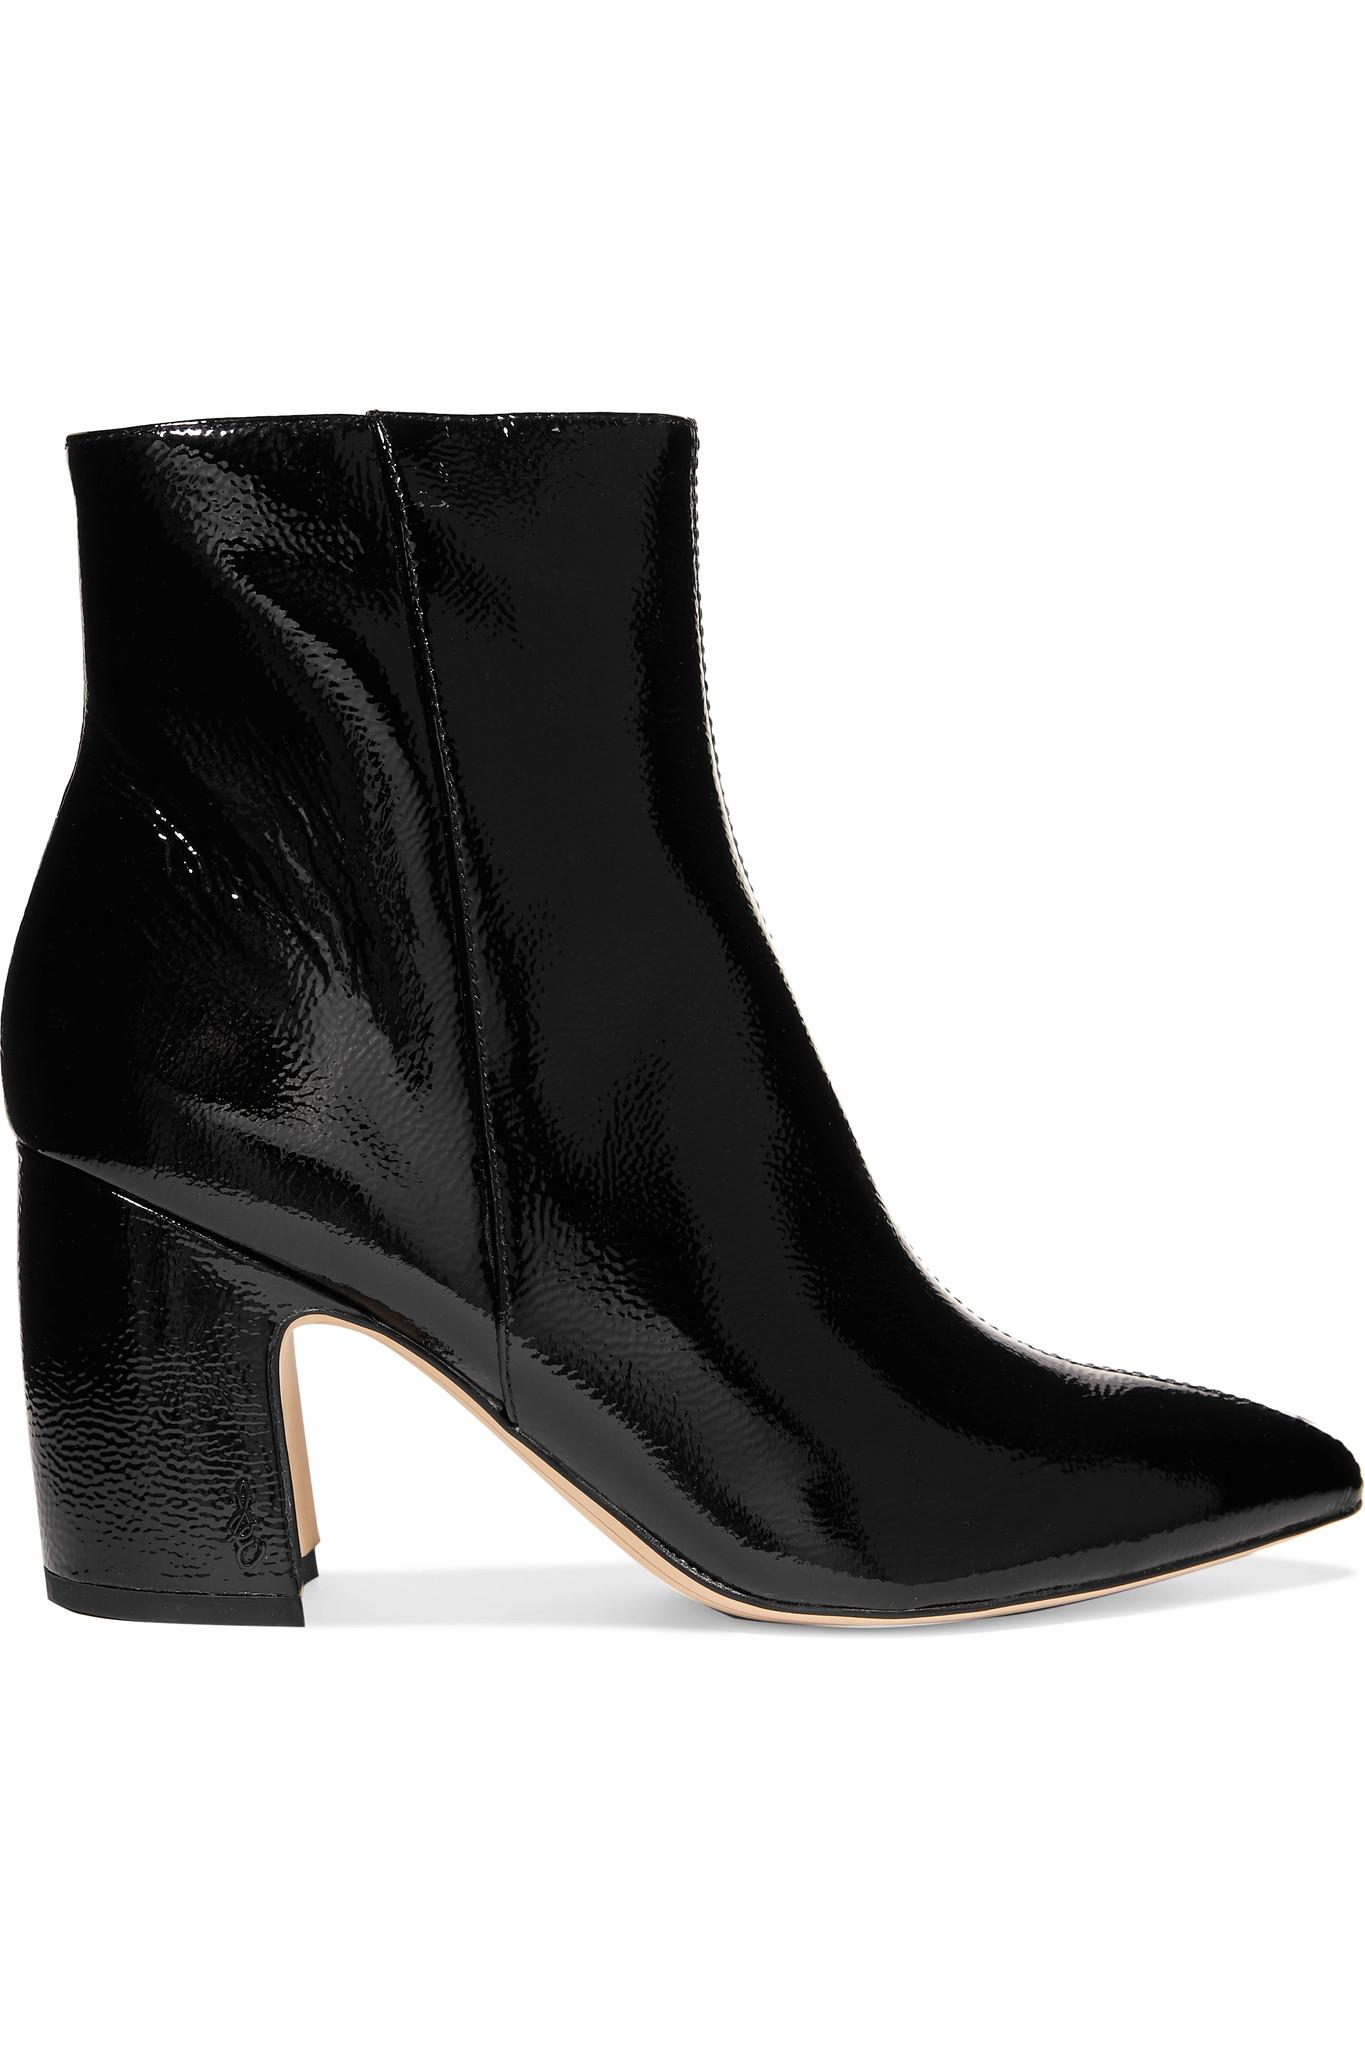 95c1345b8fd Sam Edelman Hilty Patent-leather Ankle Boots in Black - Lyst